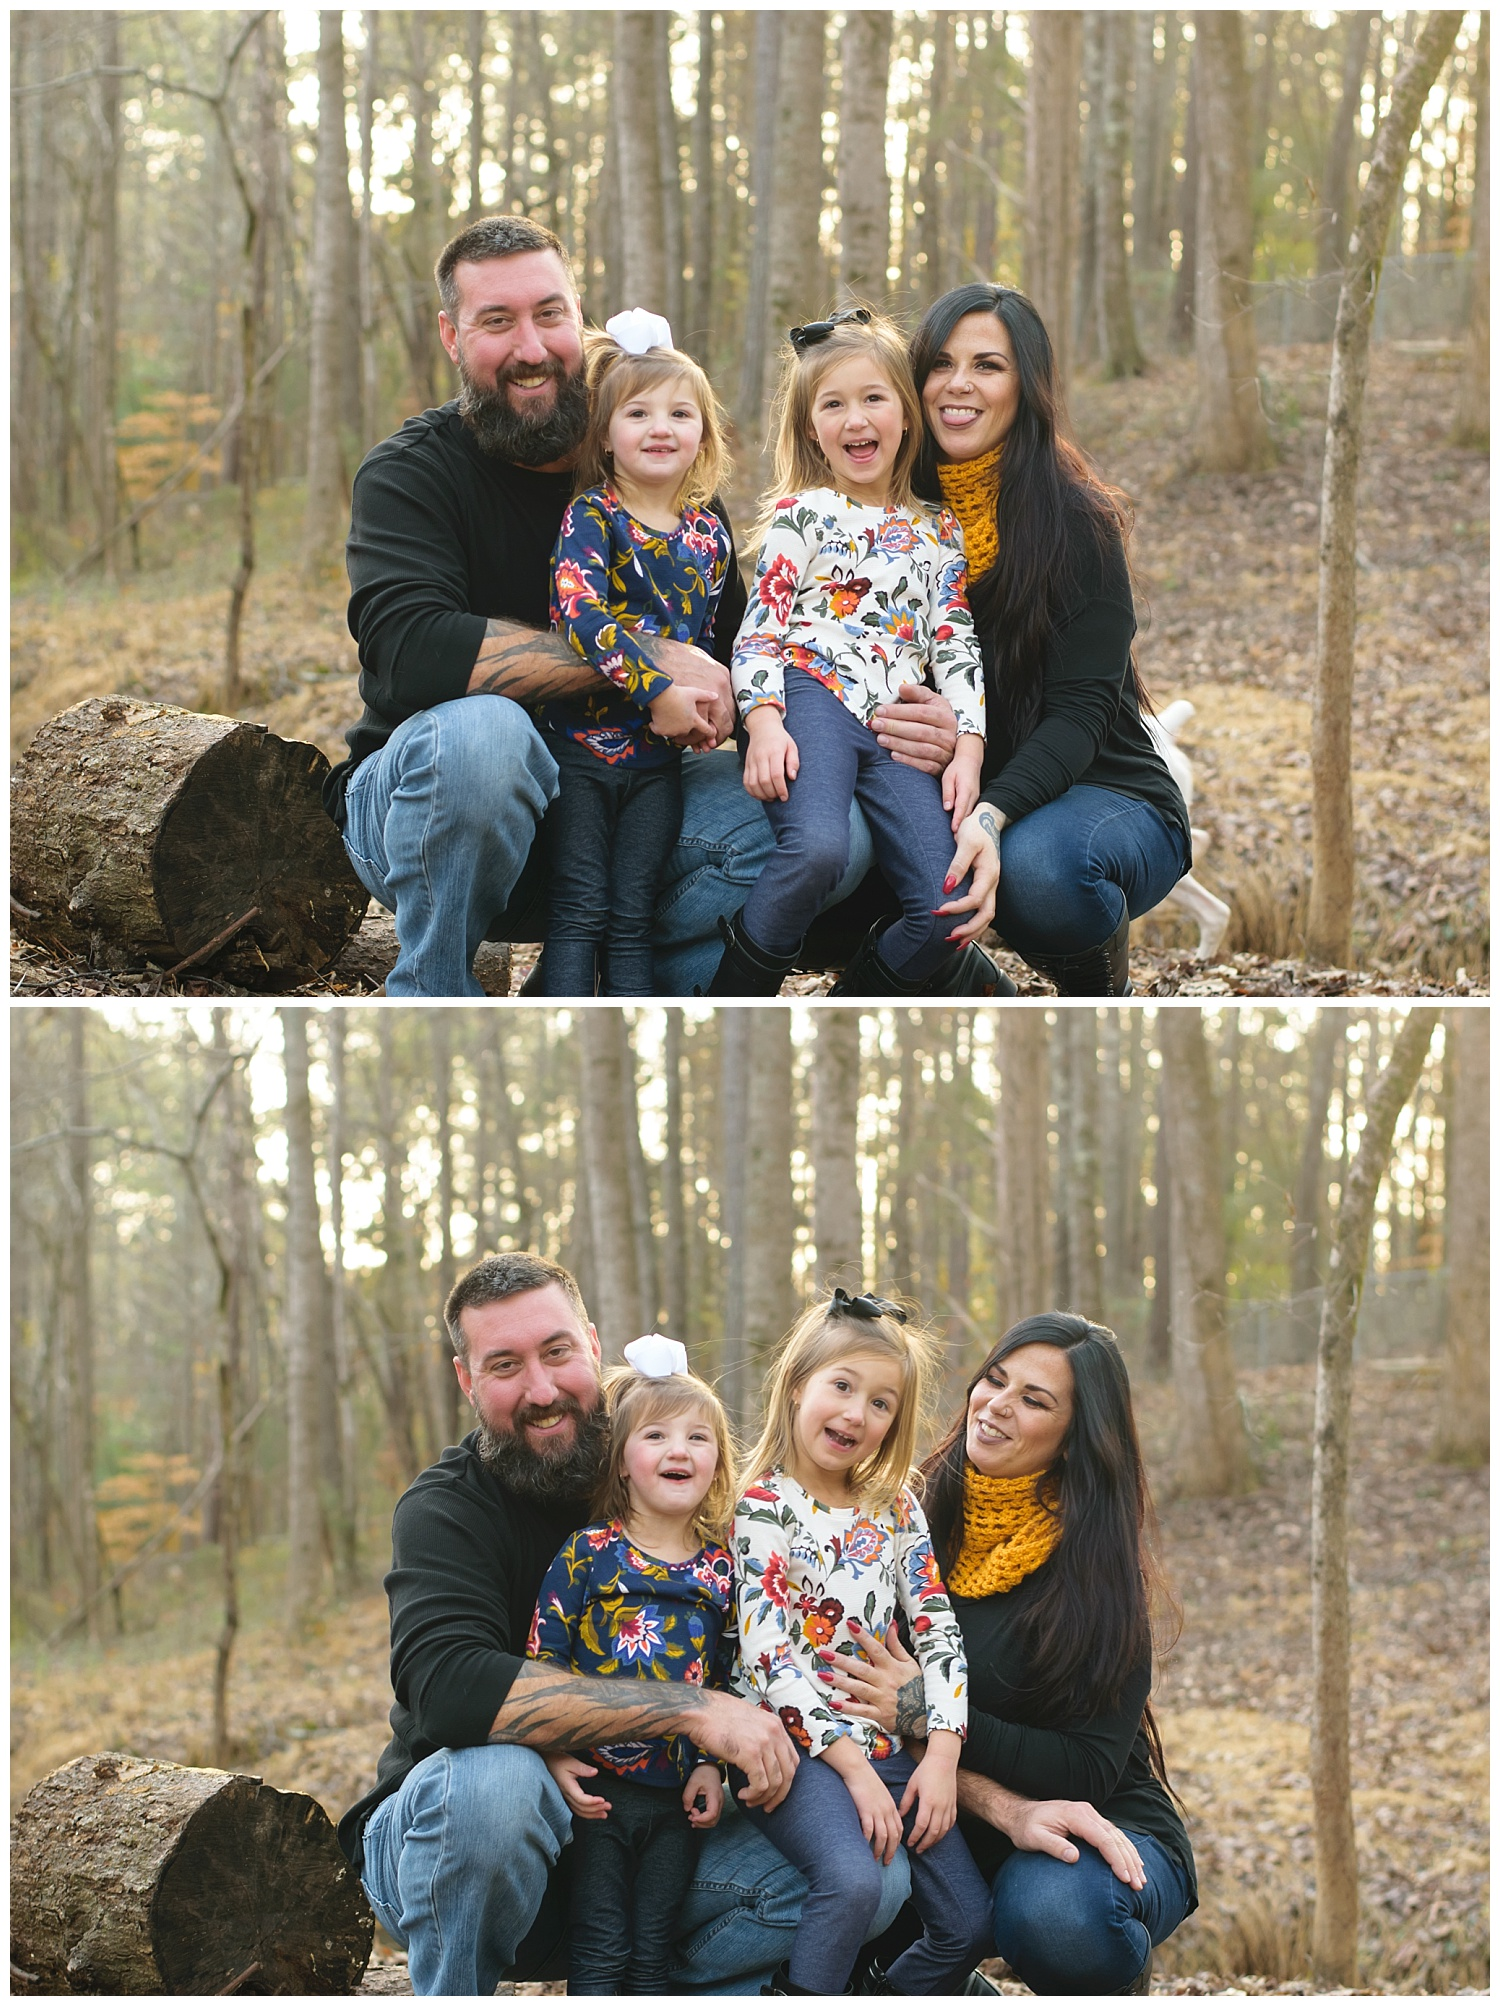 these are images of a family during a lifestyle family session. they were taken in the family's backyard and everyone is smiling.